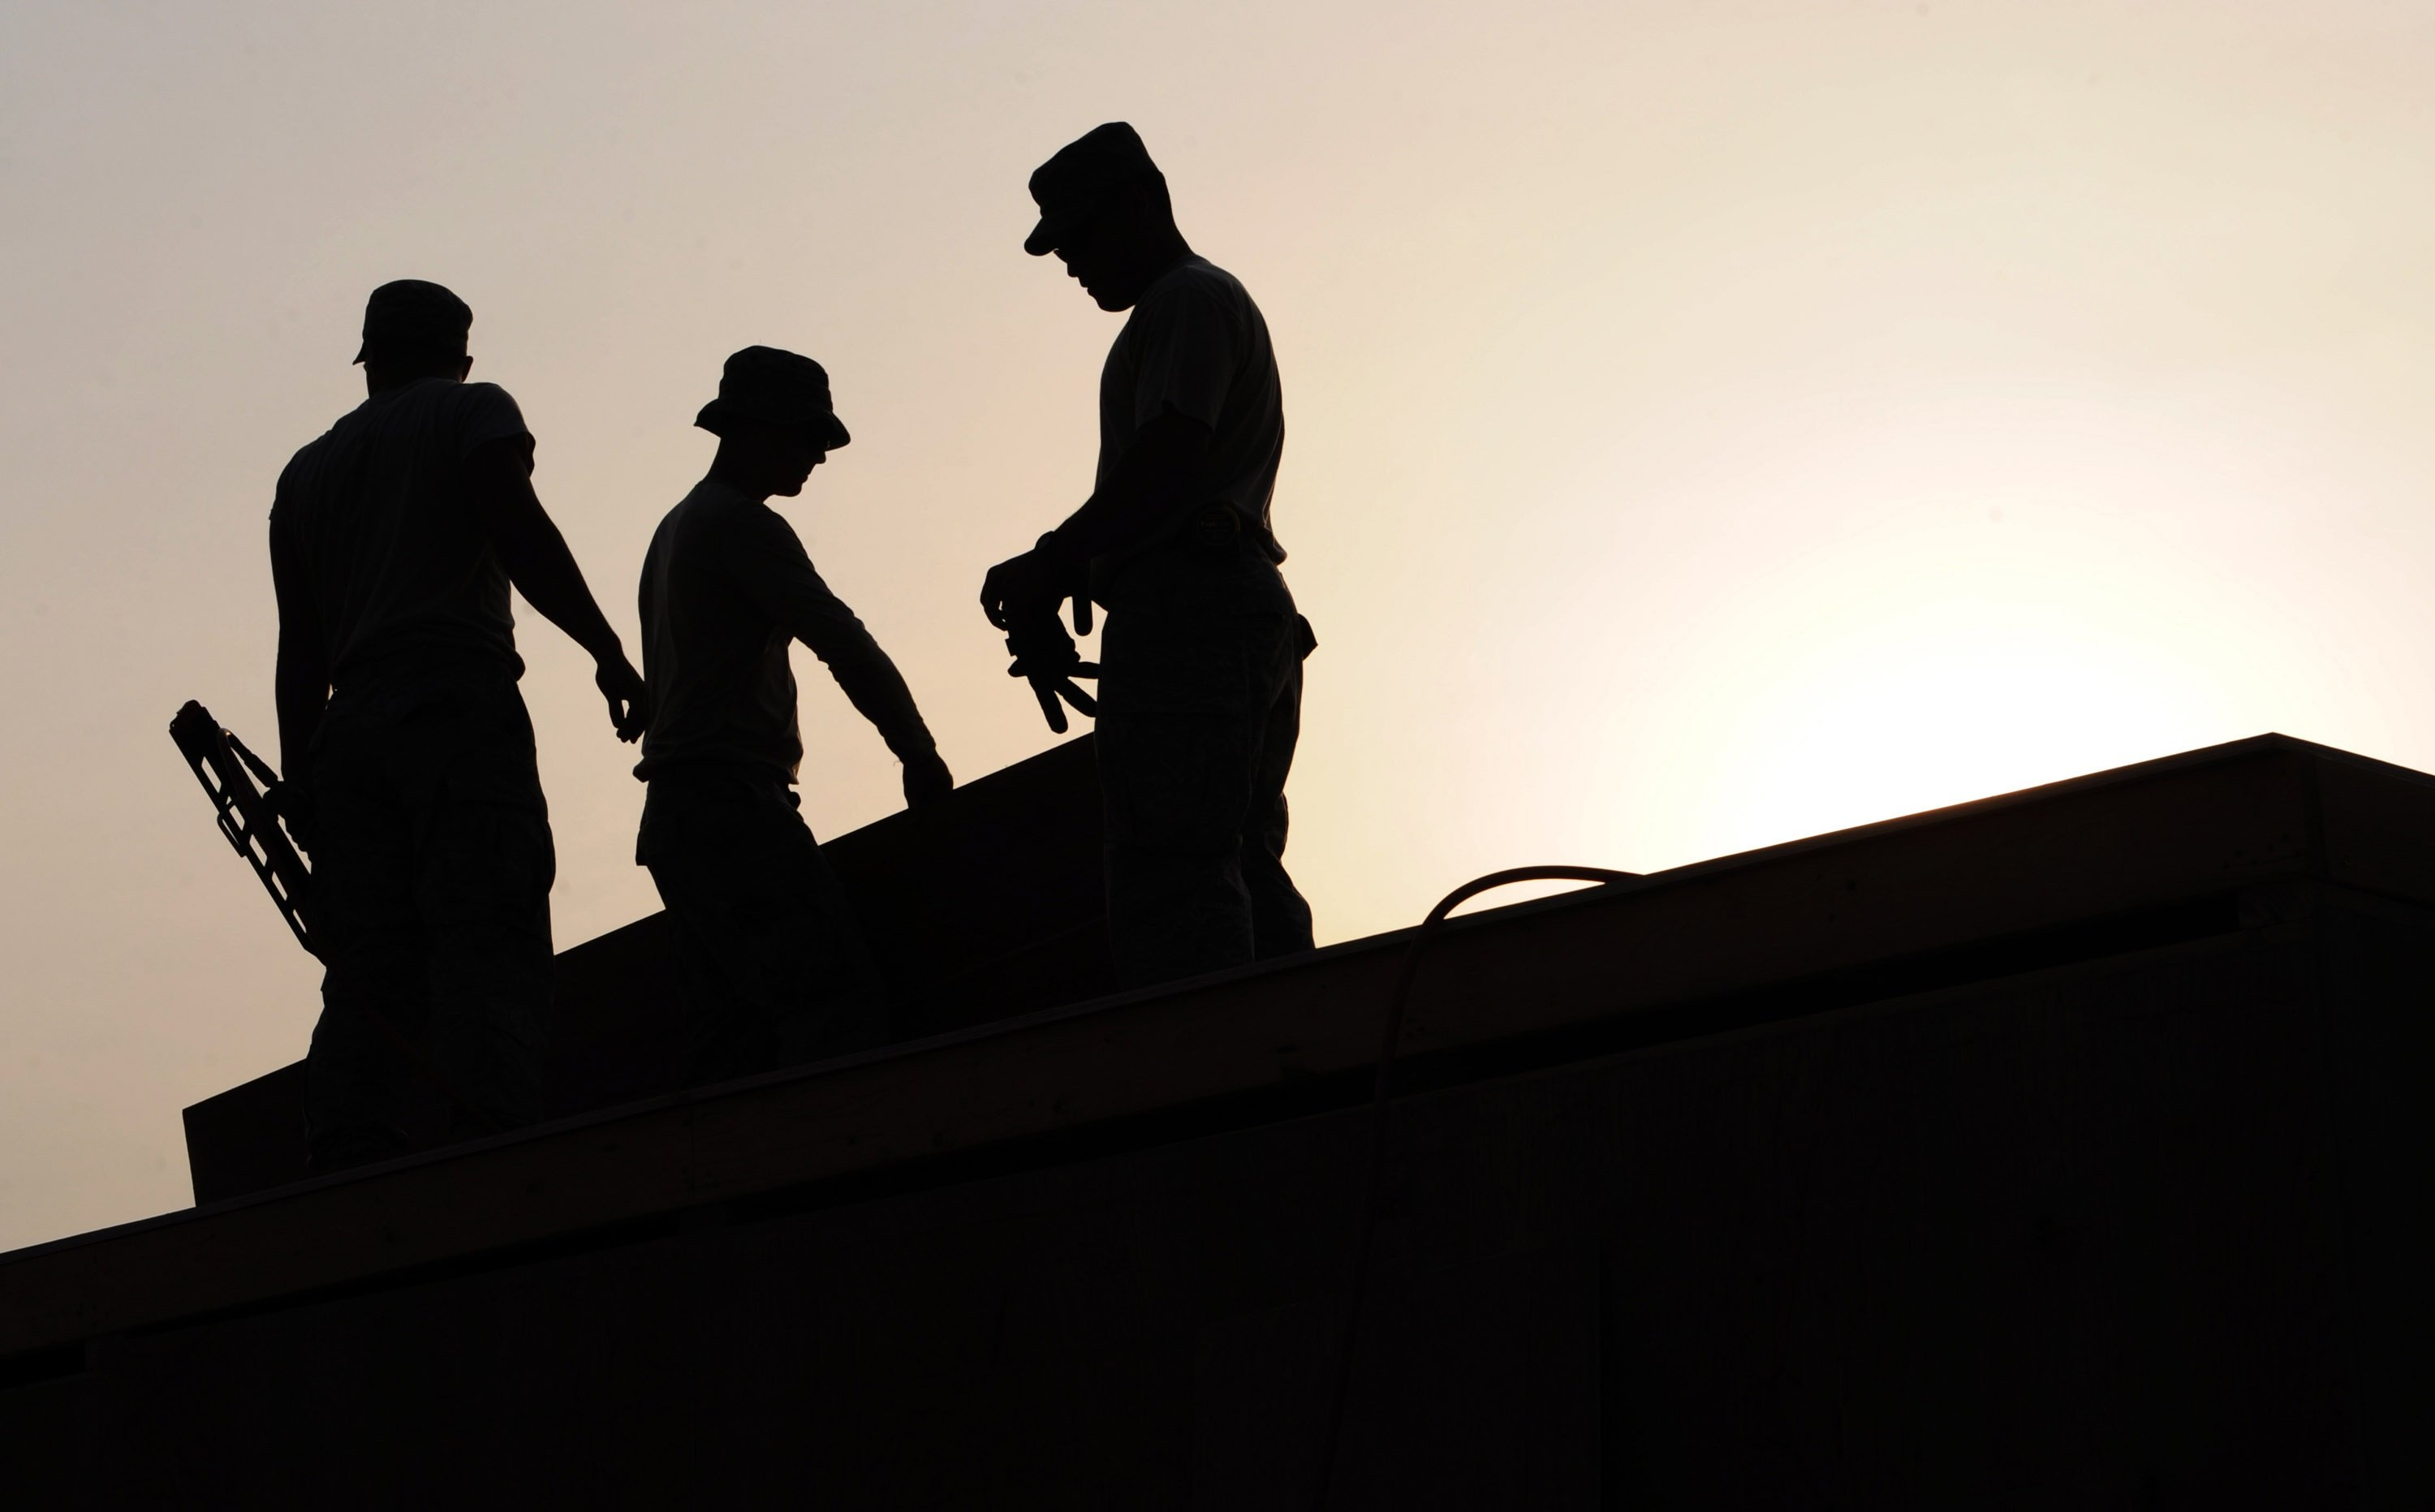 workers-construction-site-hardhats-38293.jpeg